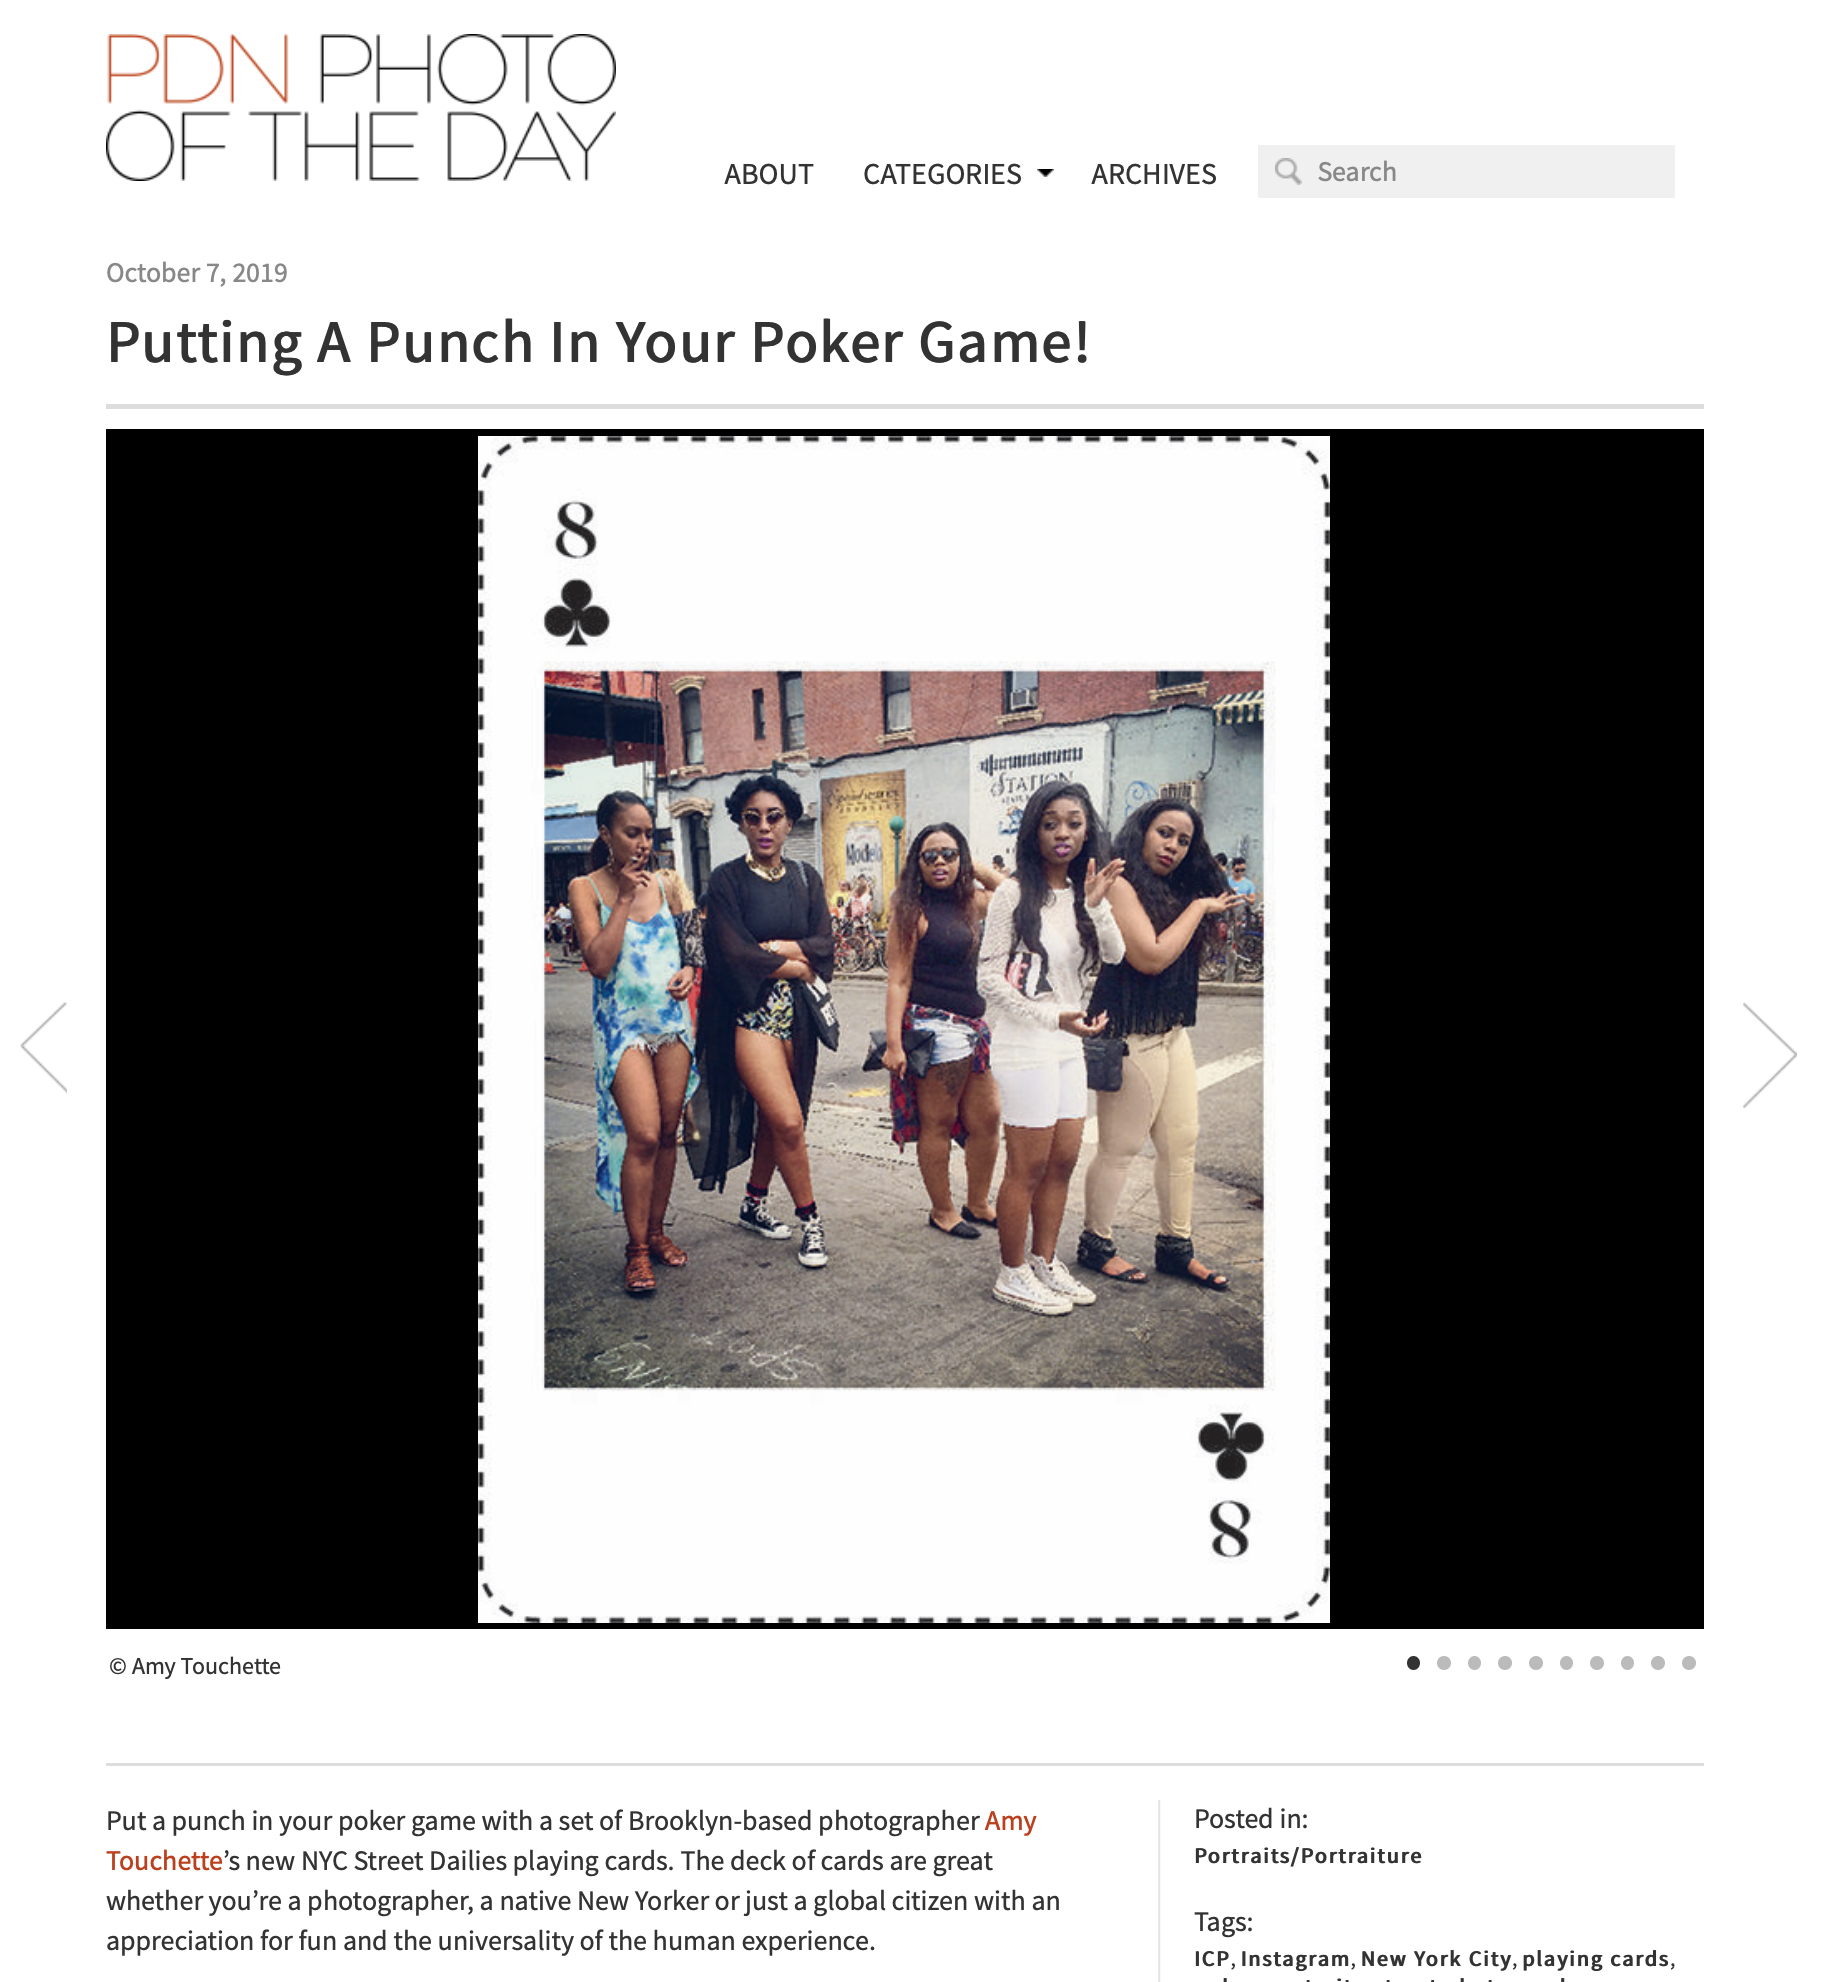 PDN Photo of the Day,NYC Street DailiesPlaying Cards - OCTOBER 7, 2019 NYC Street Dailies playing cards is featured on PDN's Photo of the Day, a platform that displays photographs selected by the editors of Photo District News magazine